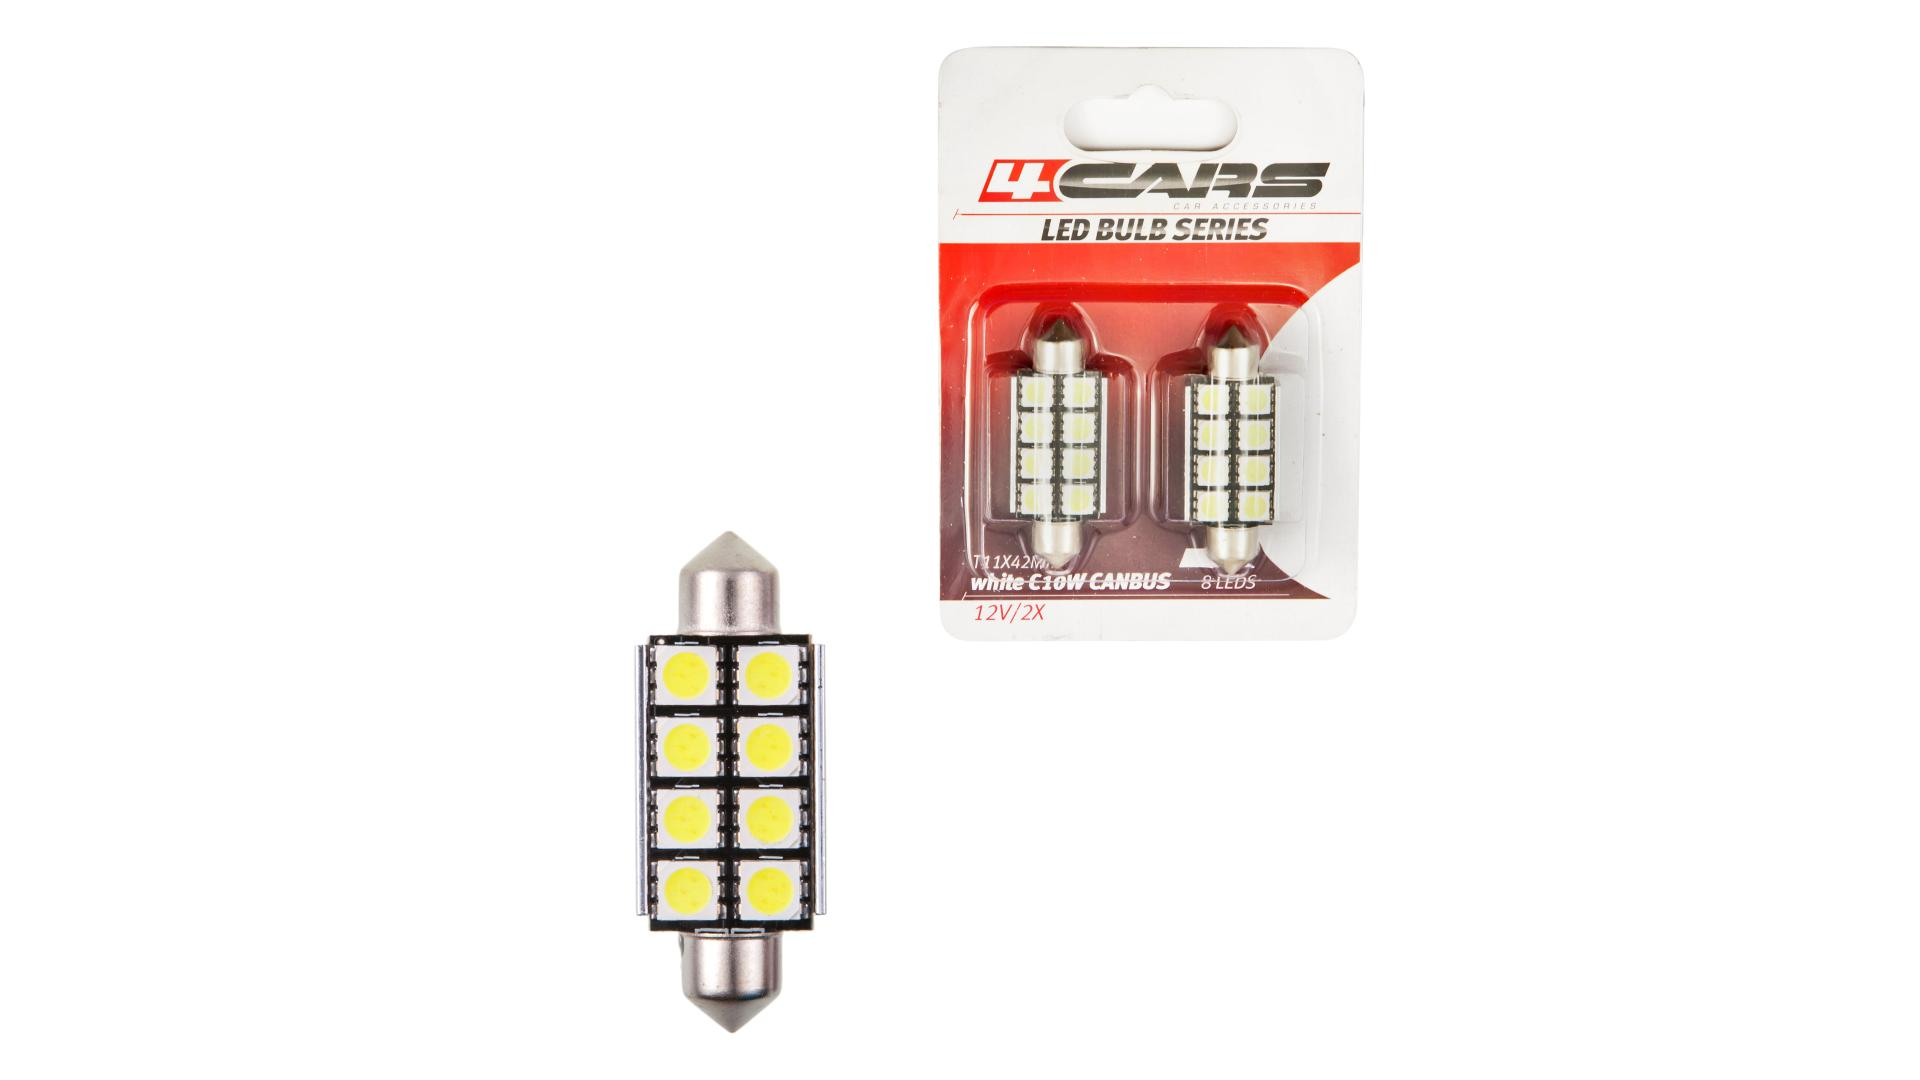 4CARS LED ŽIAROVKA 8LED 12V FESTOON CANBUS 5050SMD T11X42MM